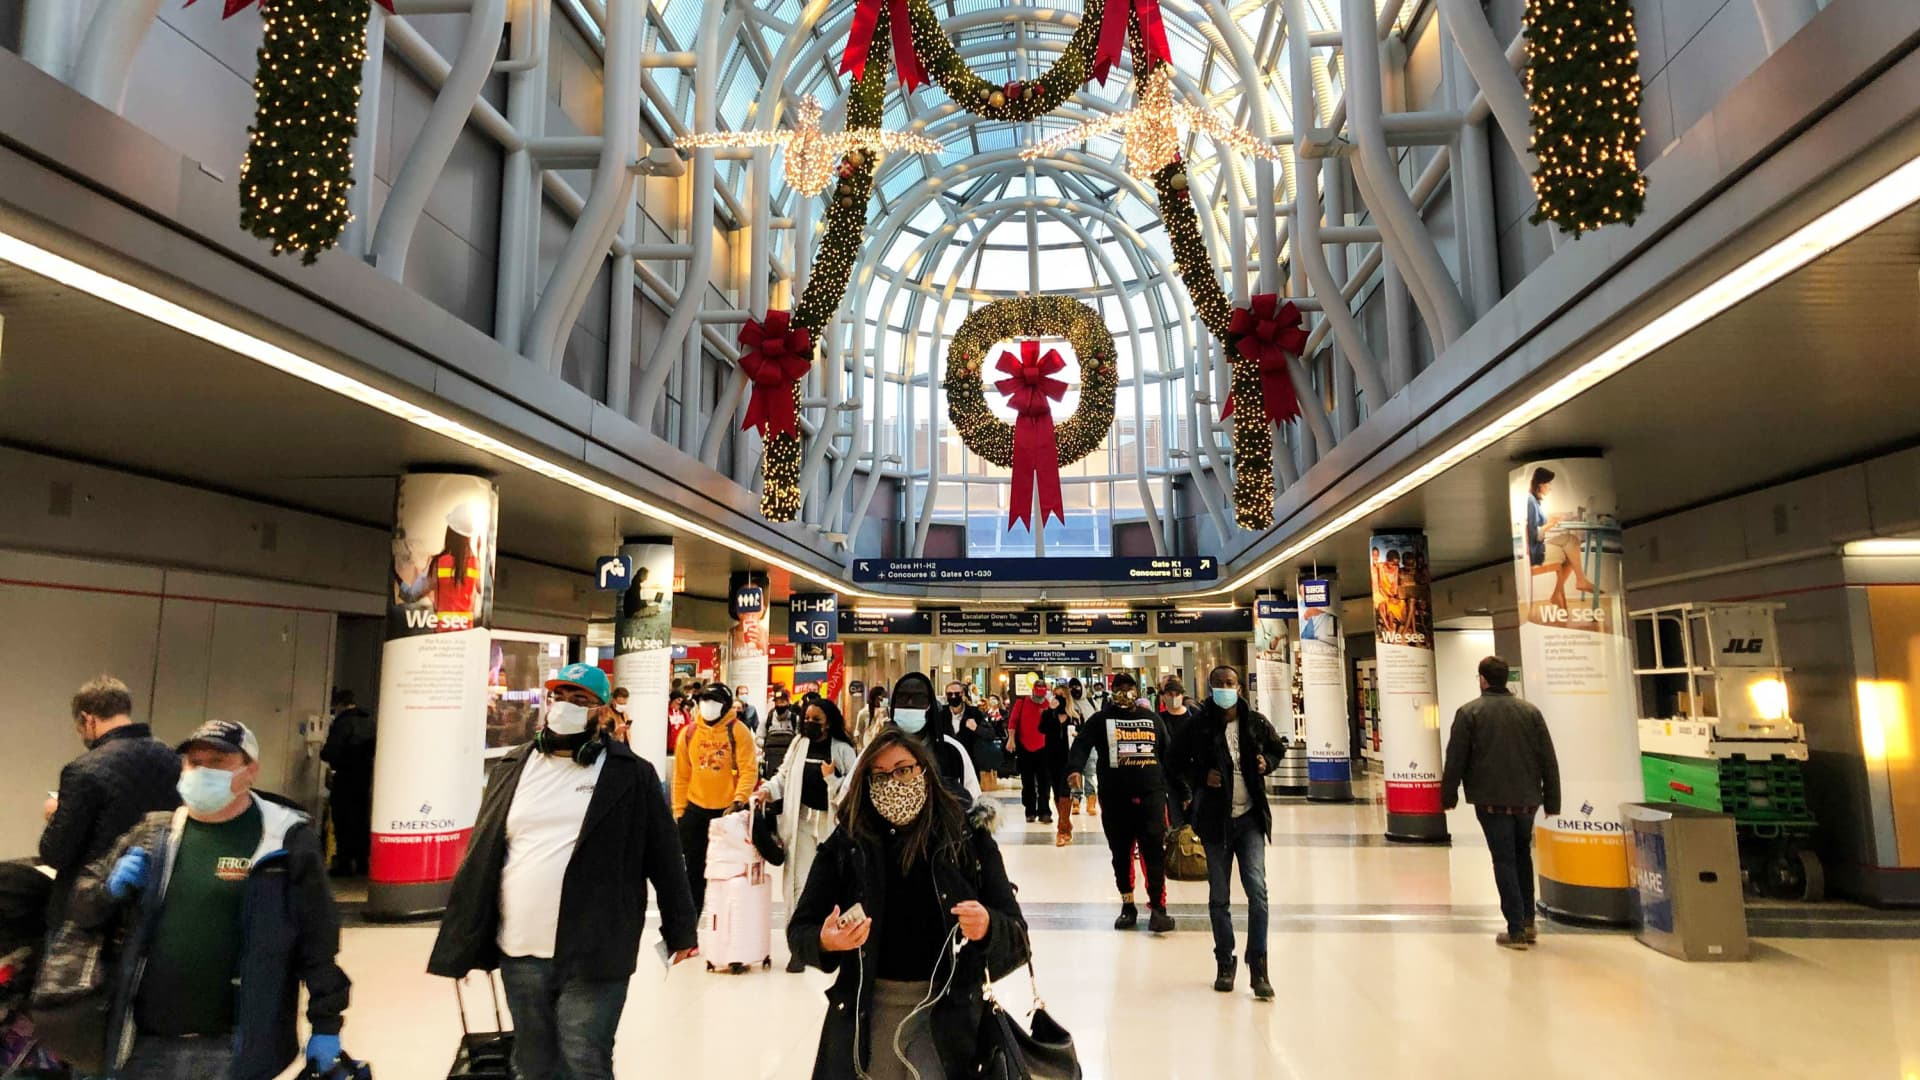 Chicago's O'Hare airport with Christmas decorations, Dec. 2, 2020.